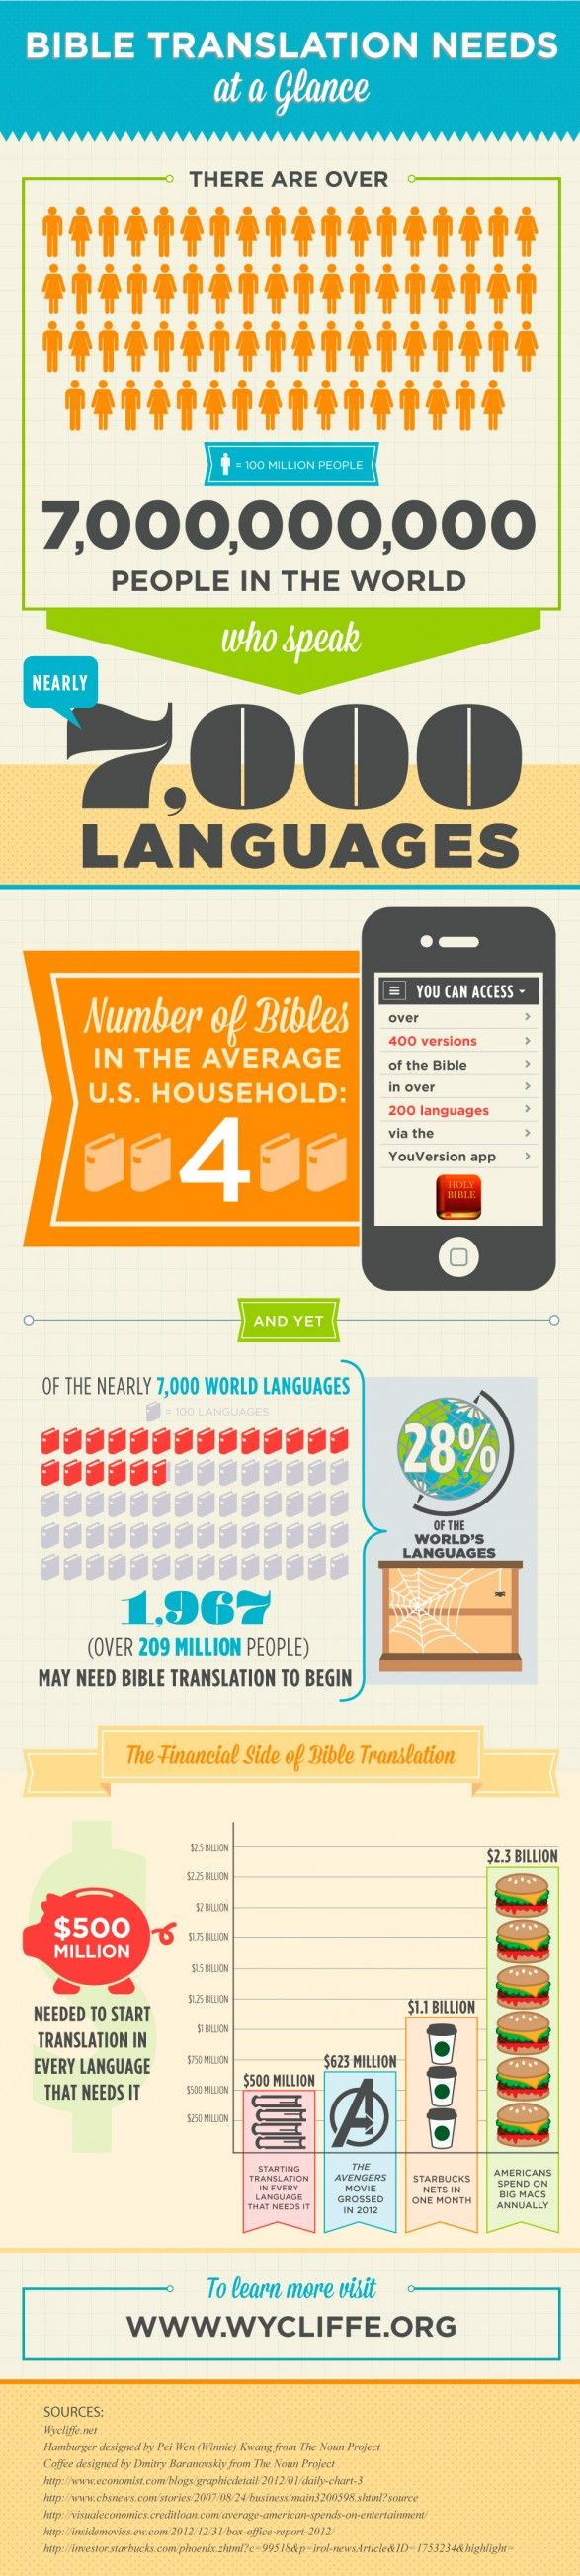 According Wycliffe Bible Translators, there a are 1,967 languages without a Bible translation.